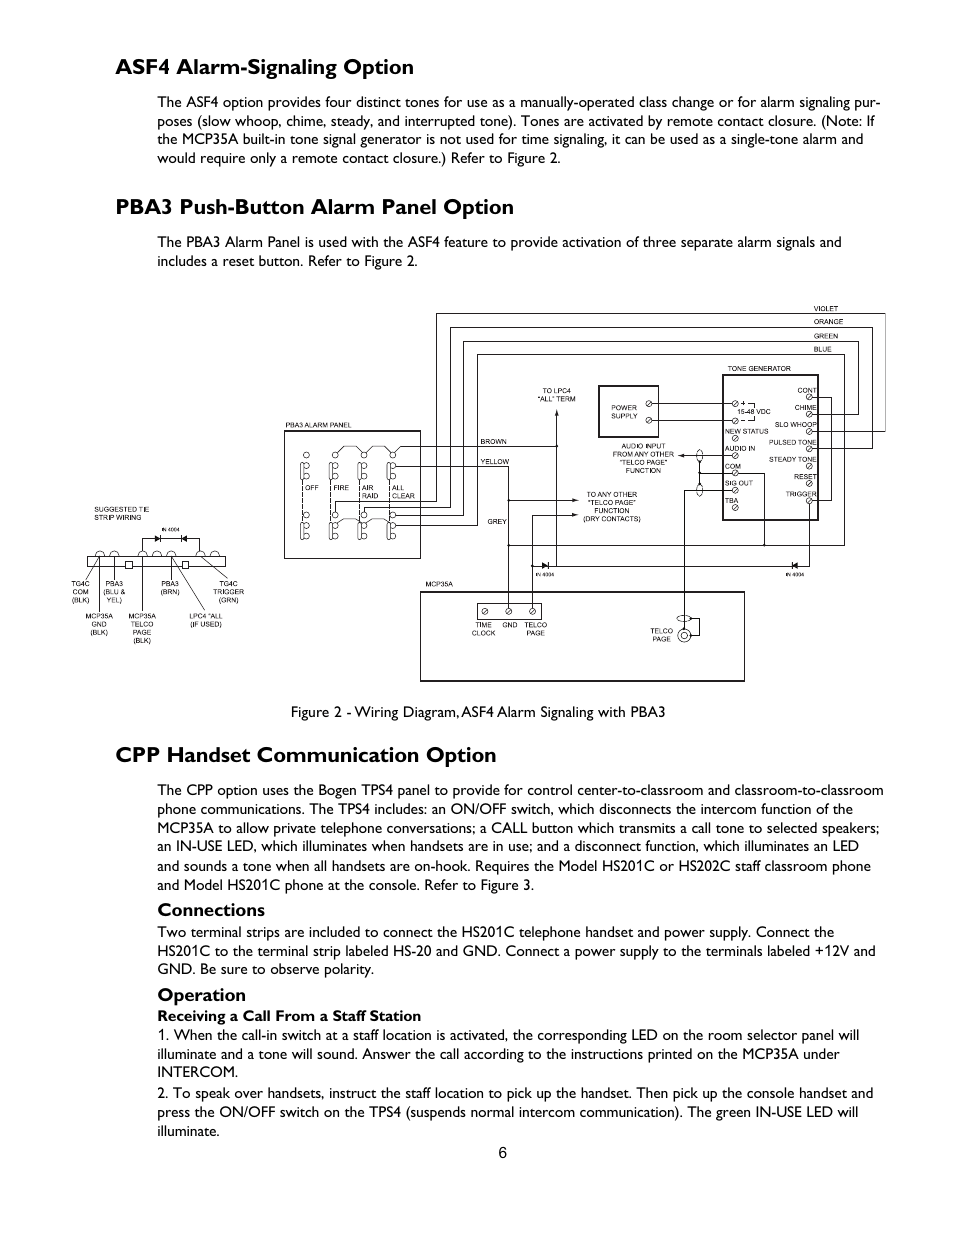 hight resolution of asf4 alarm signaling option pba3 push button alarm panel option cpp handset communication option bogen multi graphic mcpb user manual page 6 12